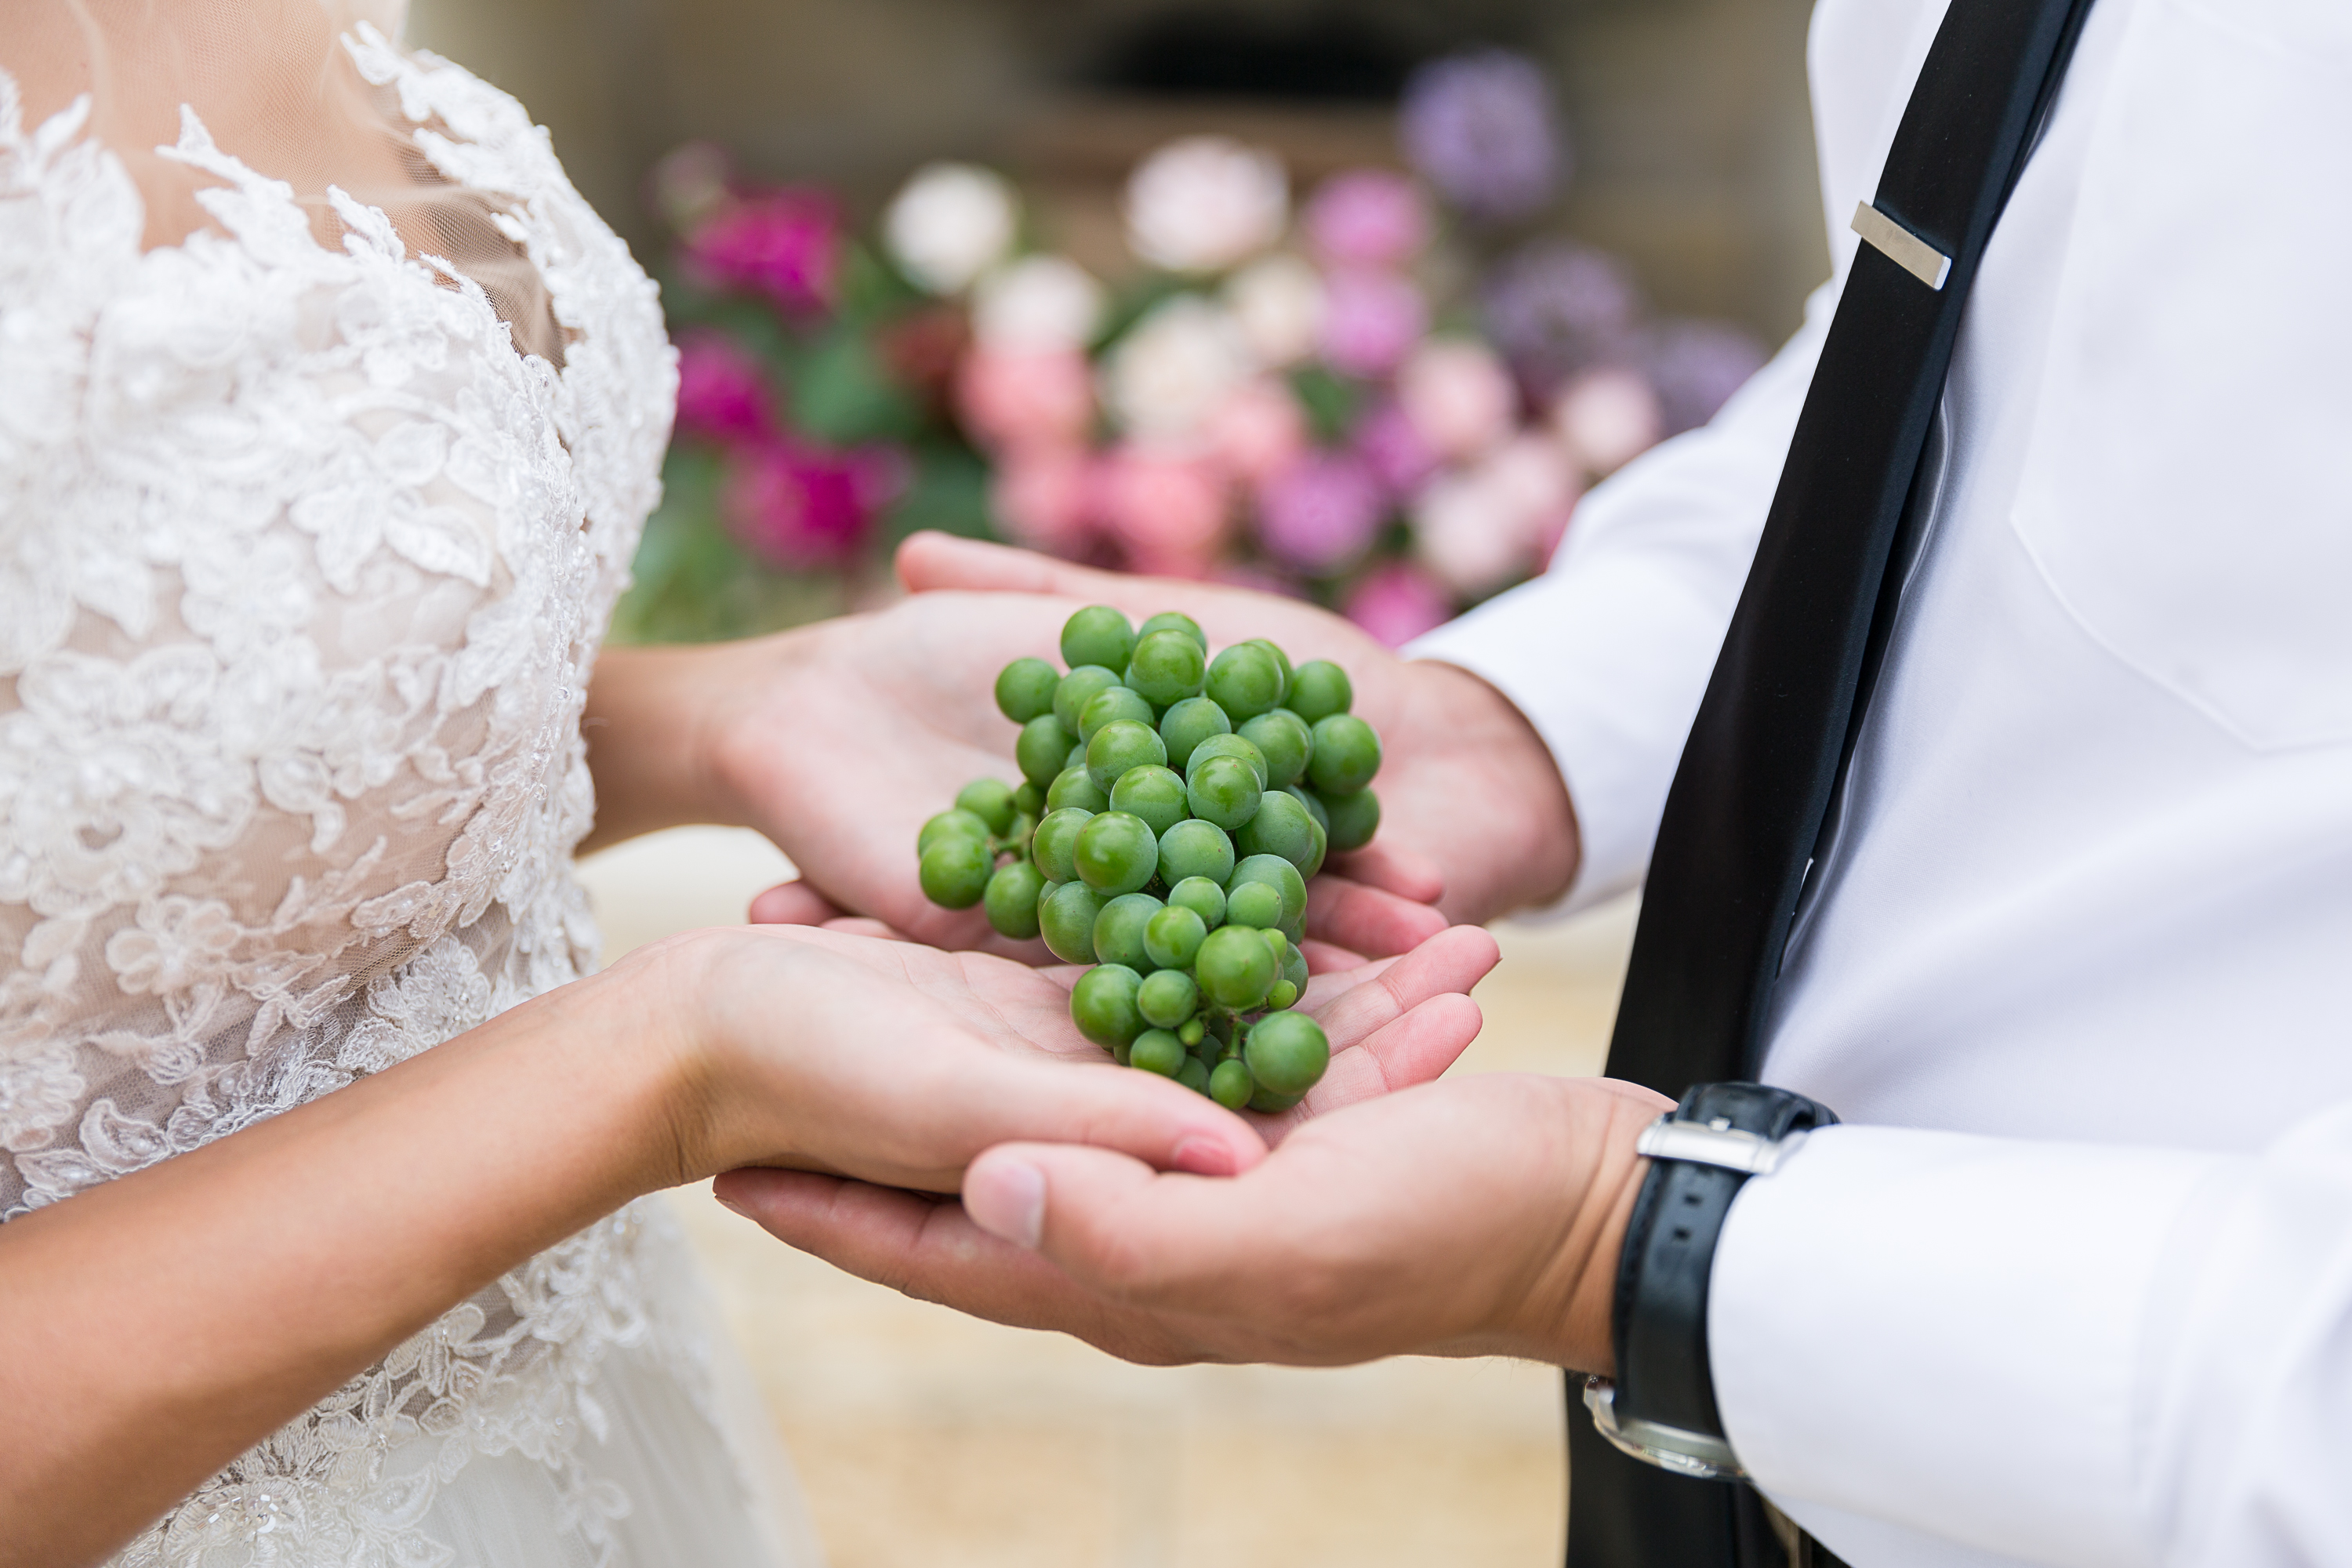 All Our Wedding Packages Include Beautiful Setting For An Intimate Ceremony At Tuscany Styled Winery On Lushly Landscaped Twenty Acre